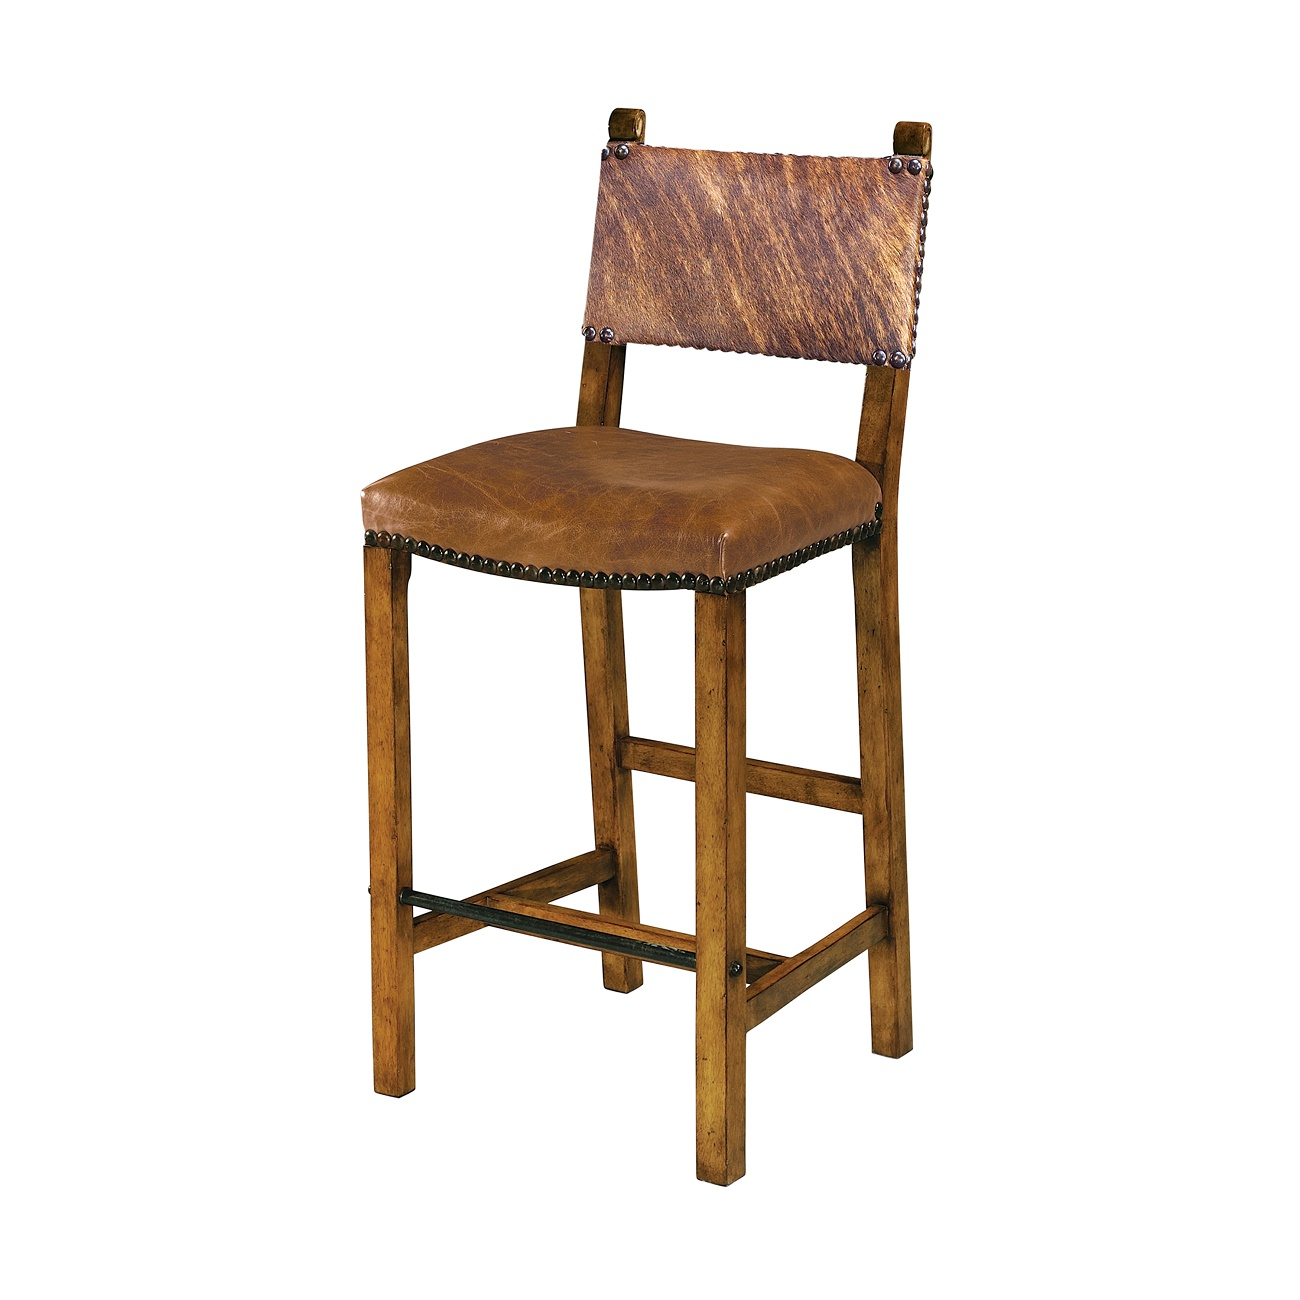 A Director Bar Chair Bar Stool, Theodore Alexander Bar Stool, Brooklyn, New York